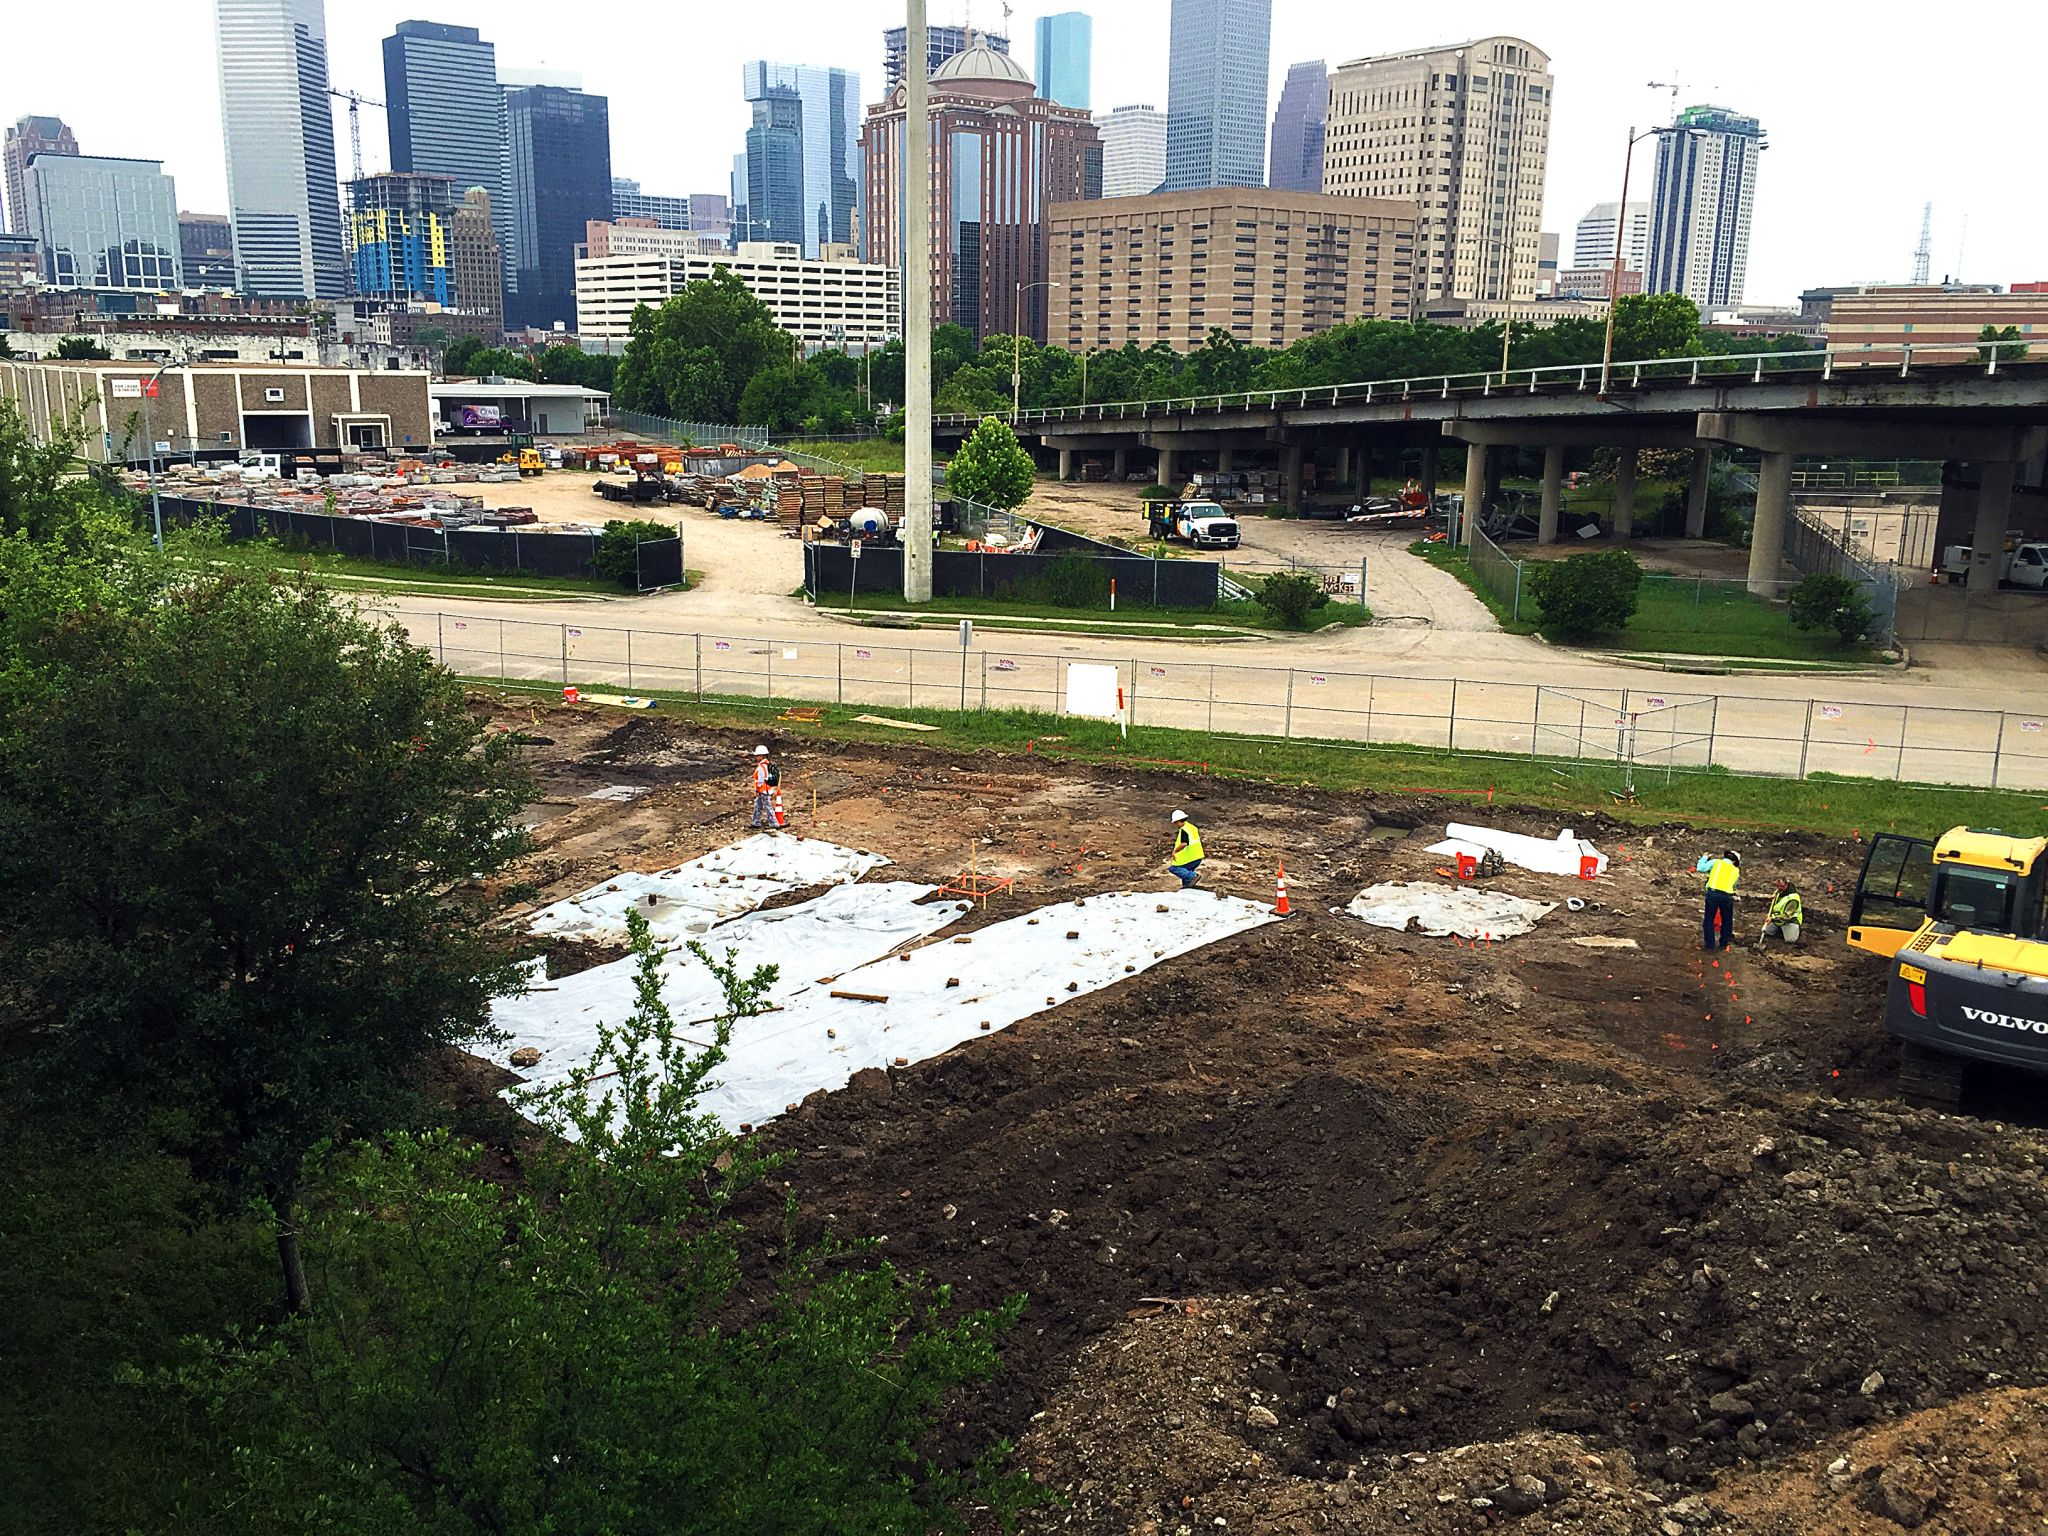 Archaeologists discover more than 150,000 historical artifacts near downtown Houston